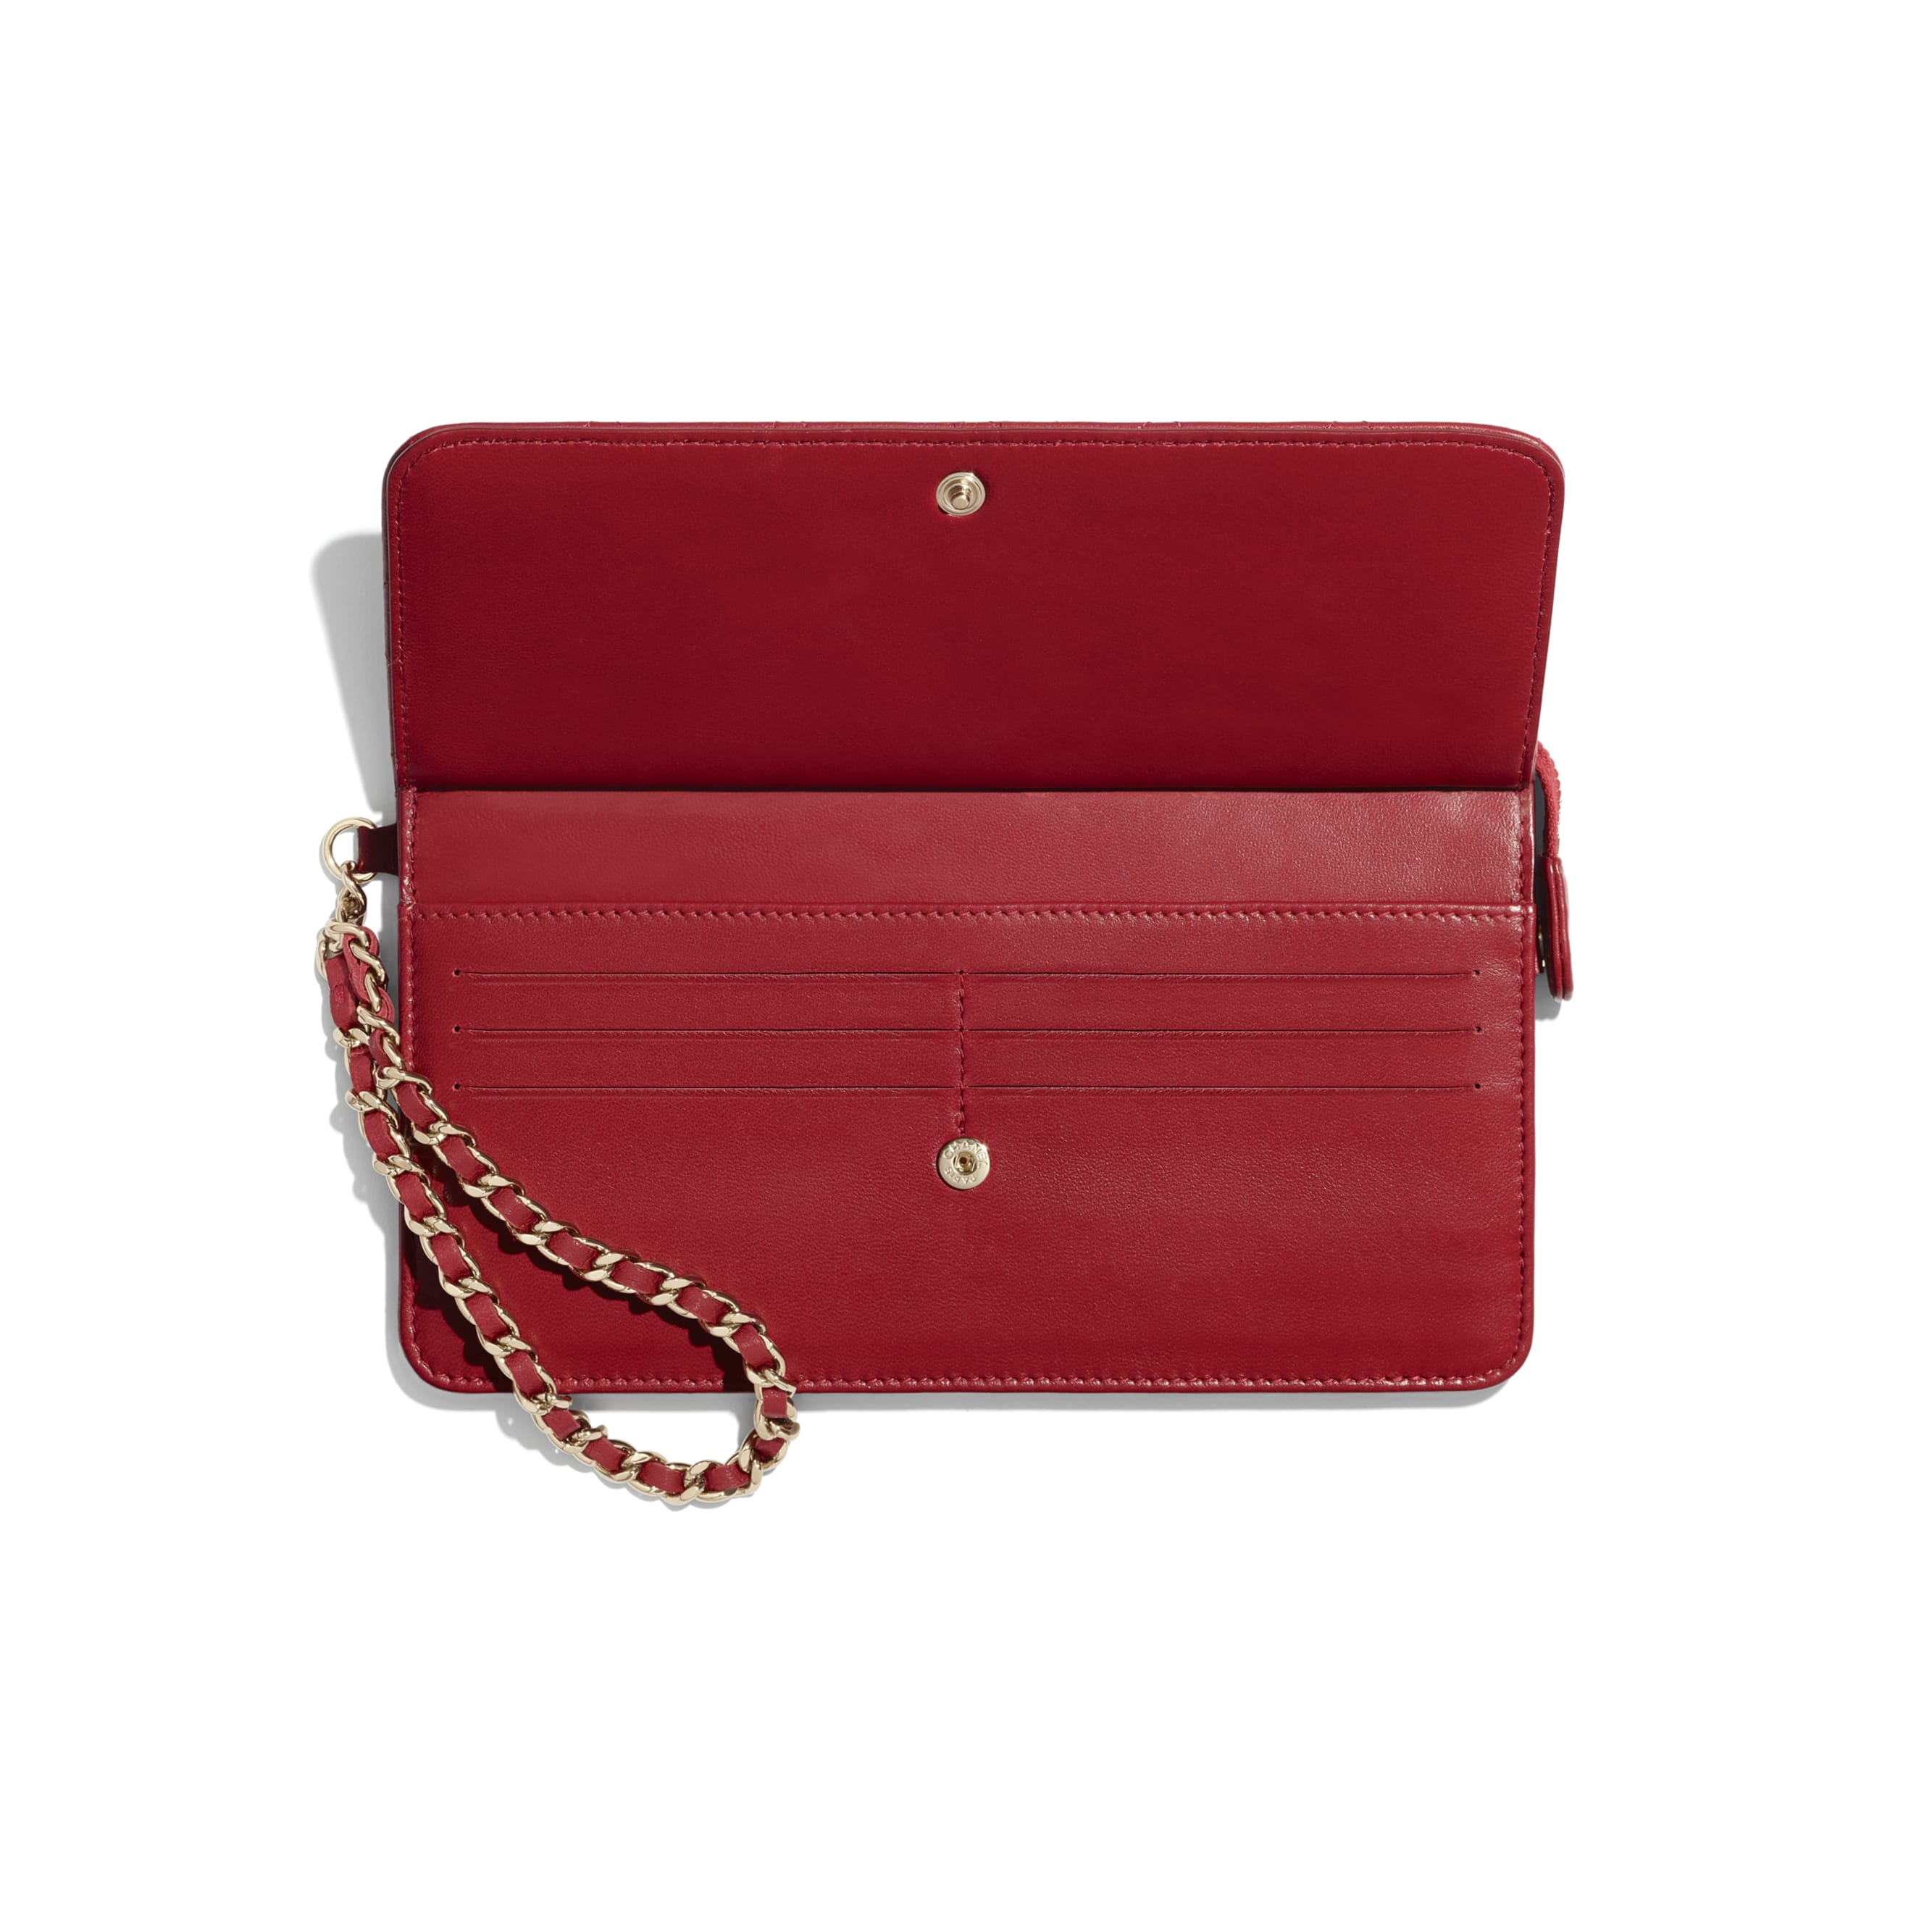 Wallet with Handle - Red - Lambskin, Charms & Gold-Tone Metal - CHANEL - Alternative view - see standard sized version